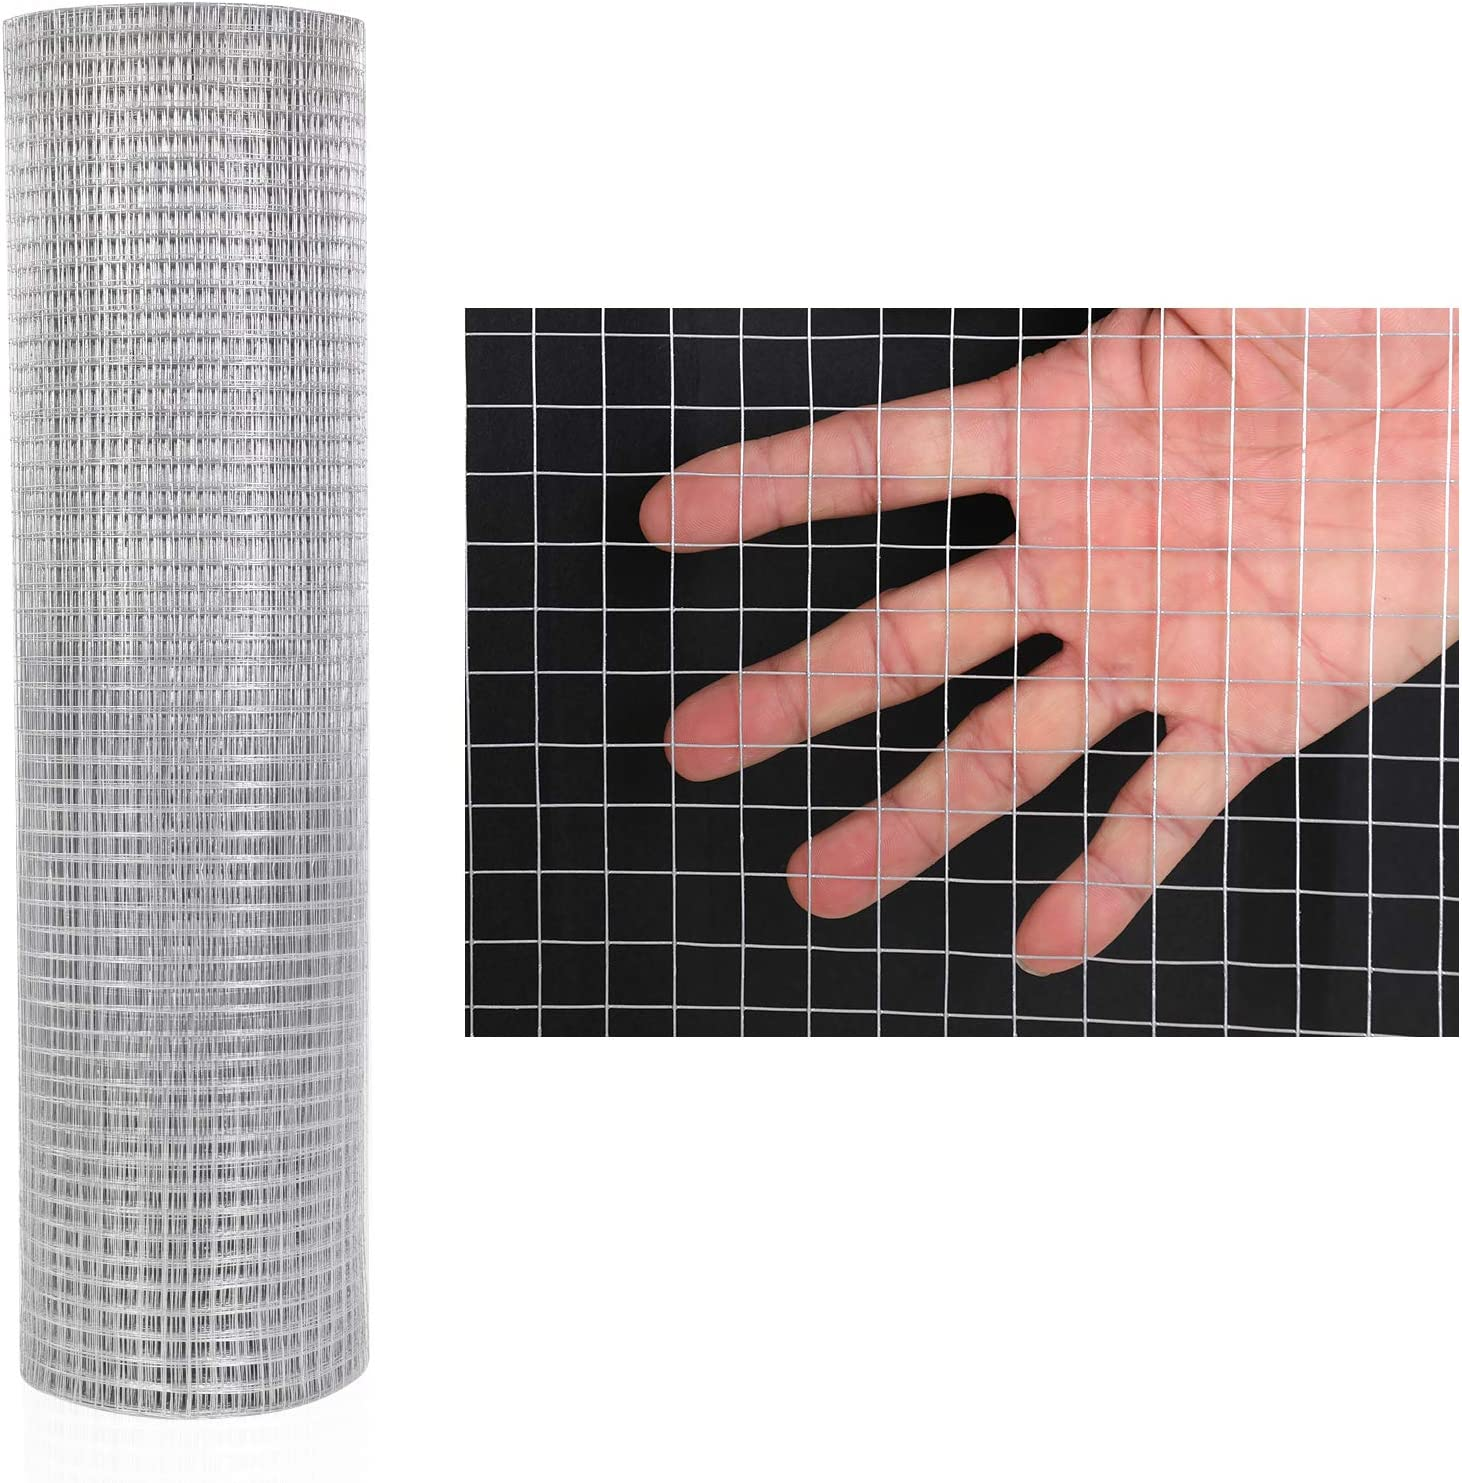 48'' x 50' 1/2 inch Hardware Cloth Galvanized Welded Cage Wire, Poultry Enclosure Plant Supports Doors Window Wire Fence Rabbit Chicken Run Fence (48'' x 50')